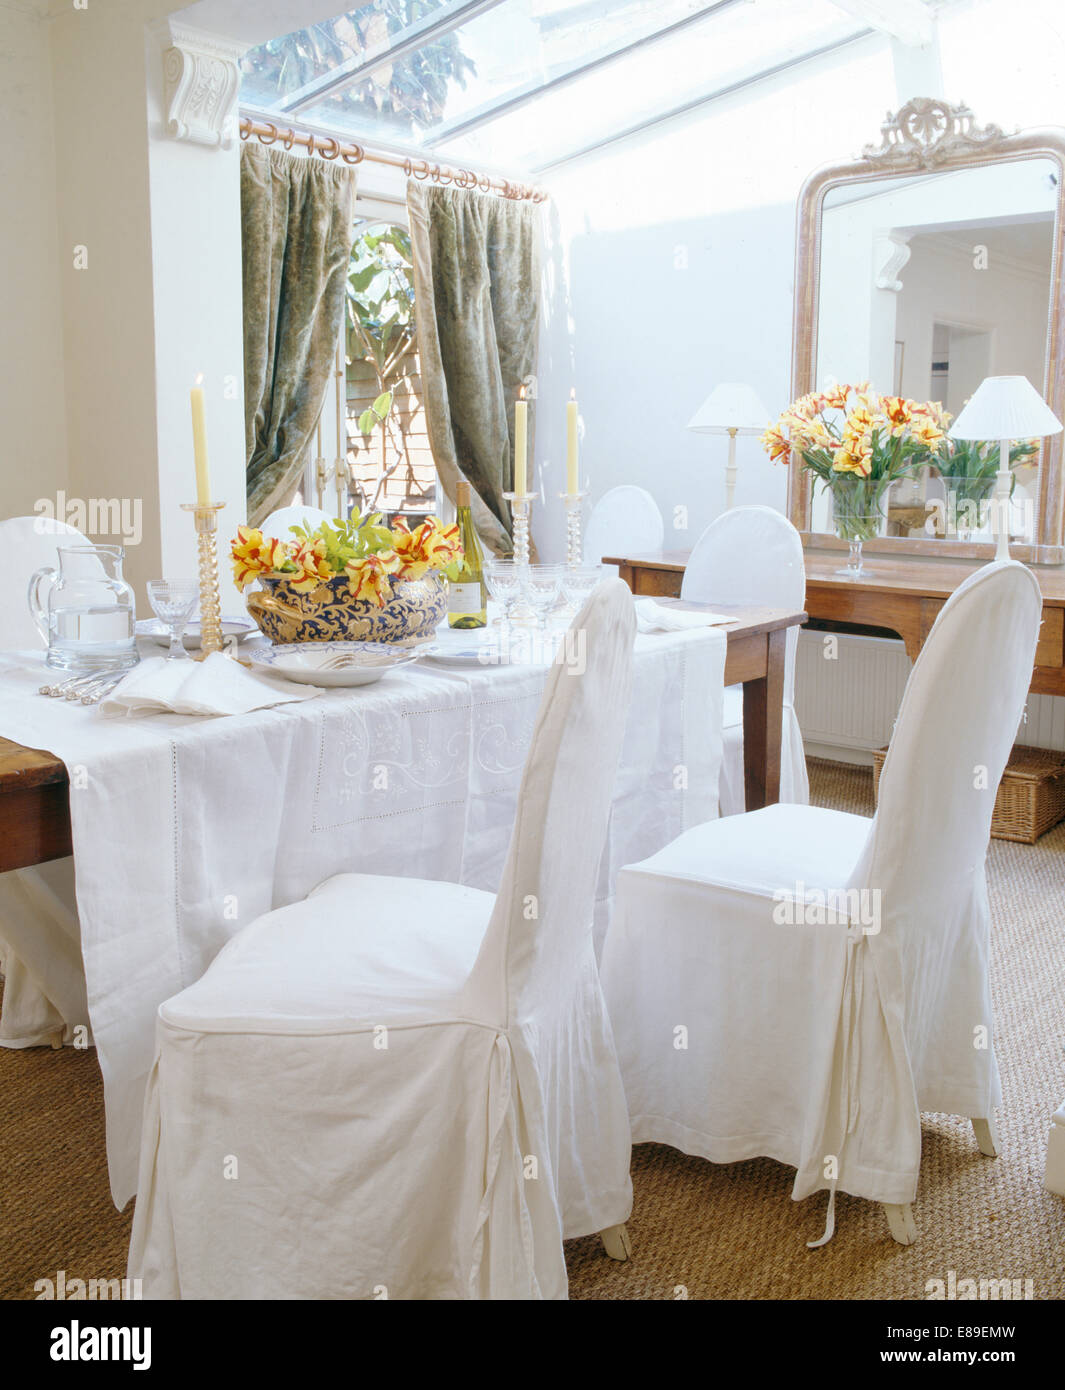 White loose covers on chairs at table with white linen cloth in ...